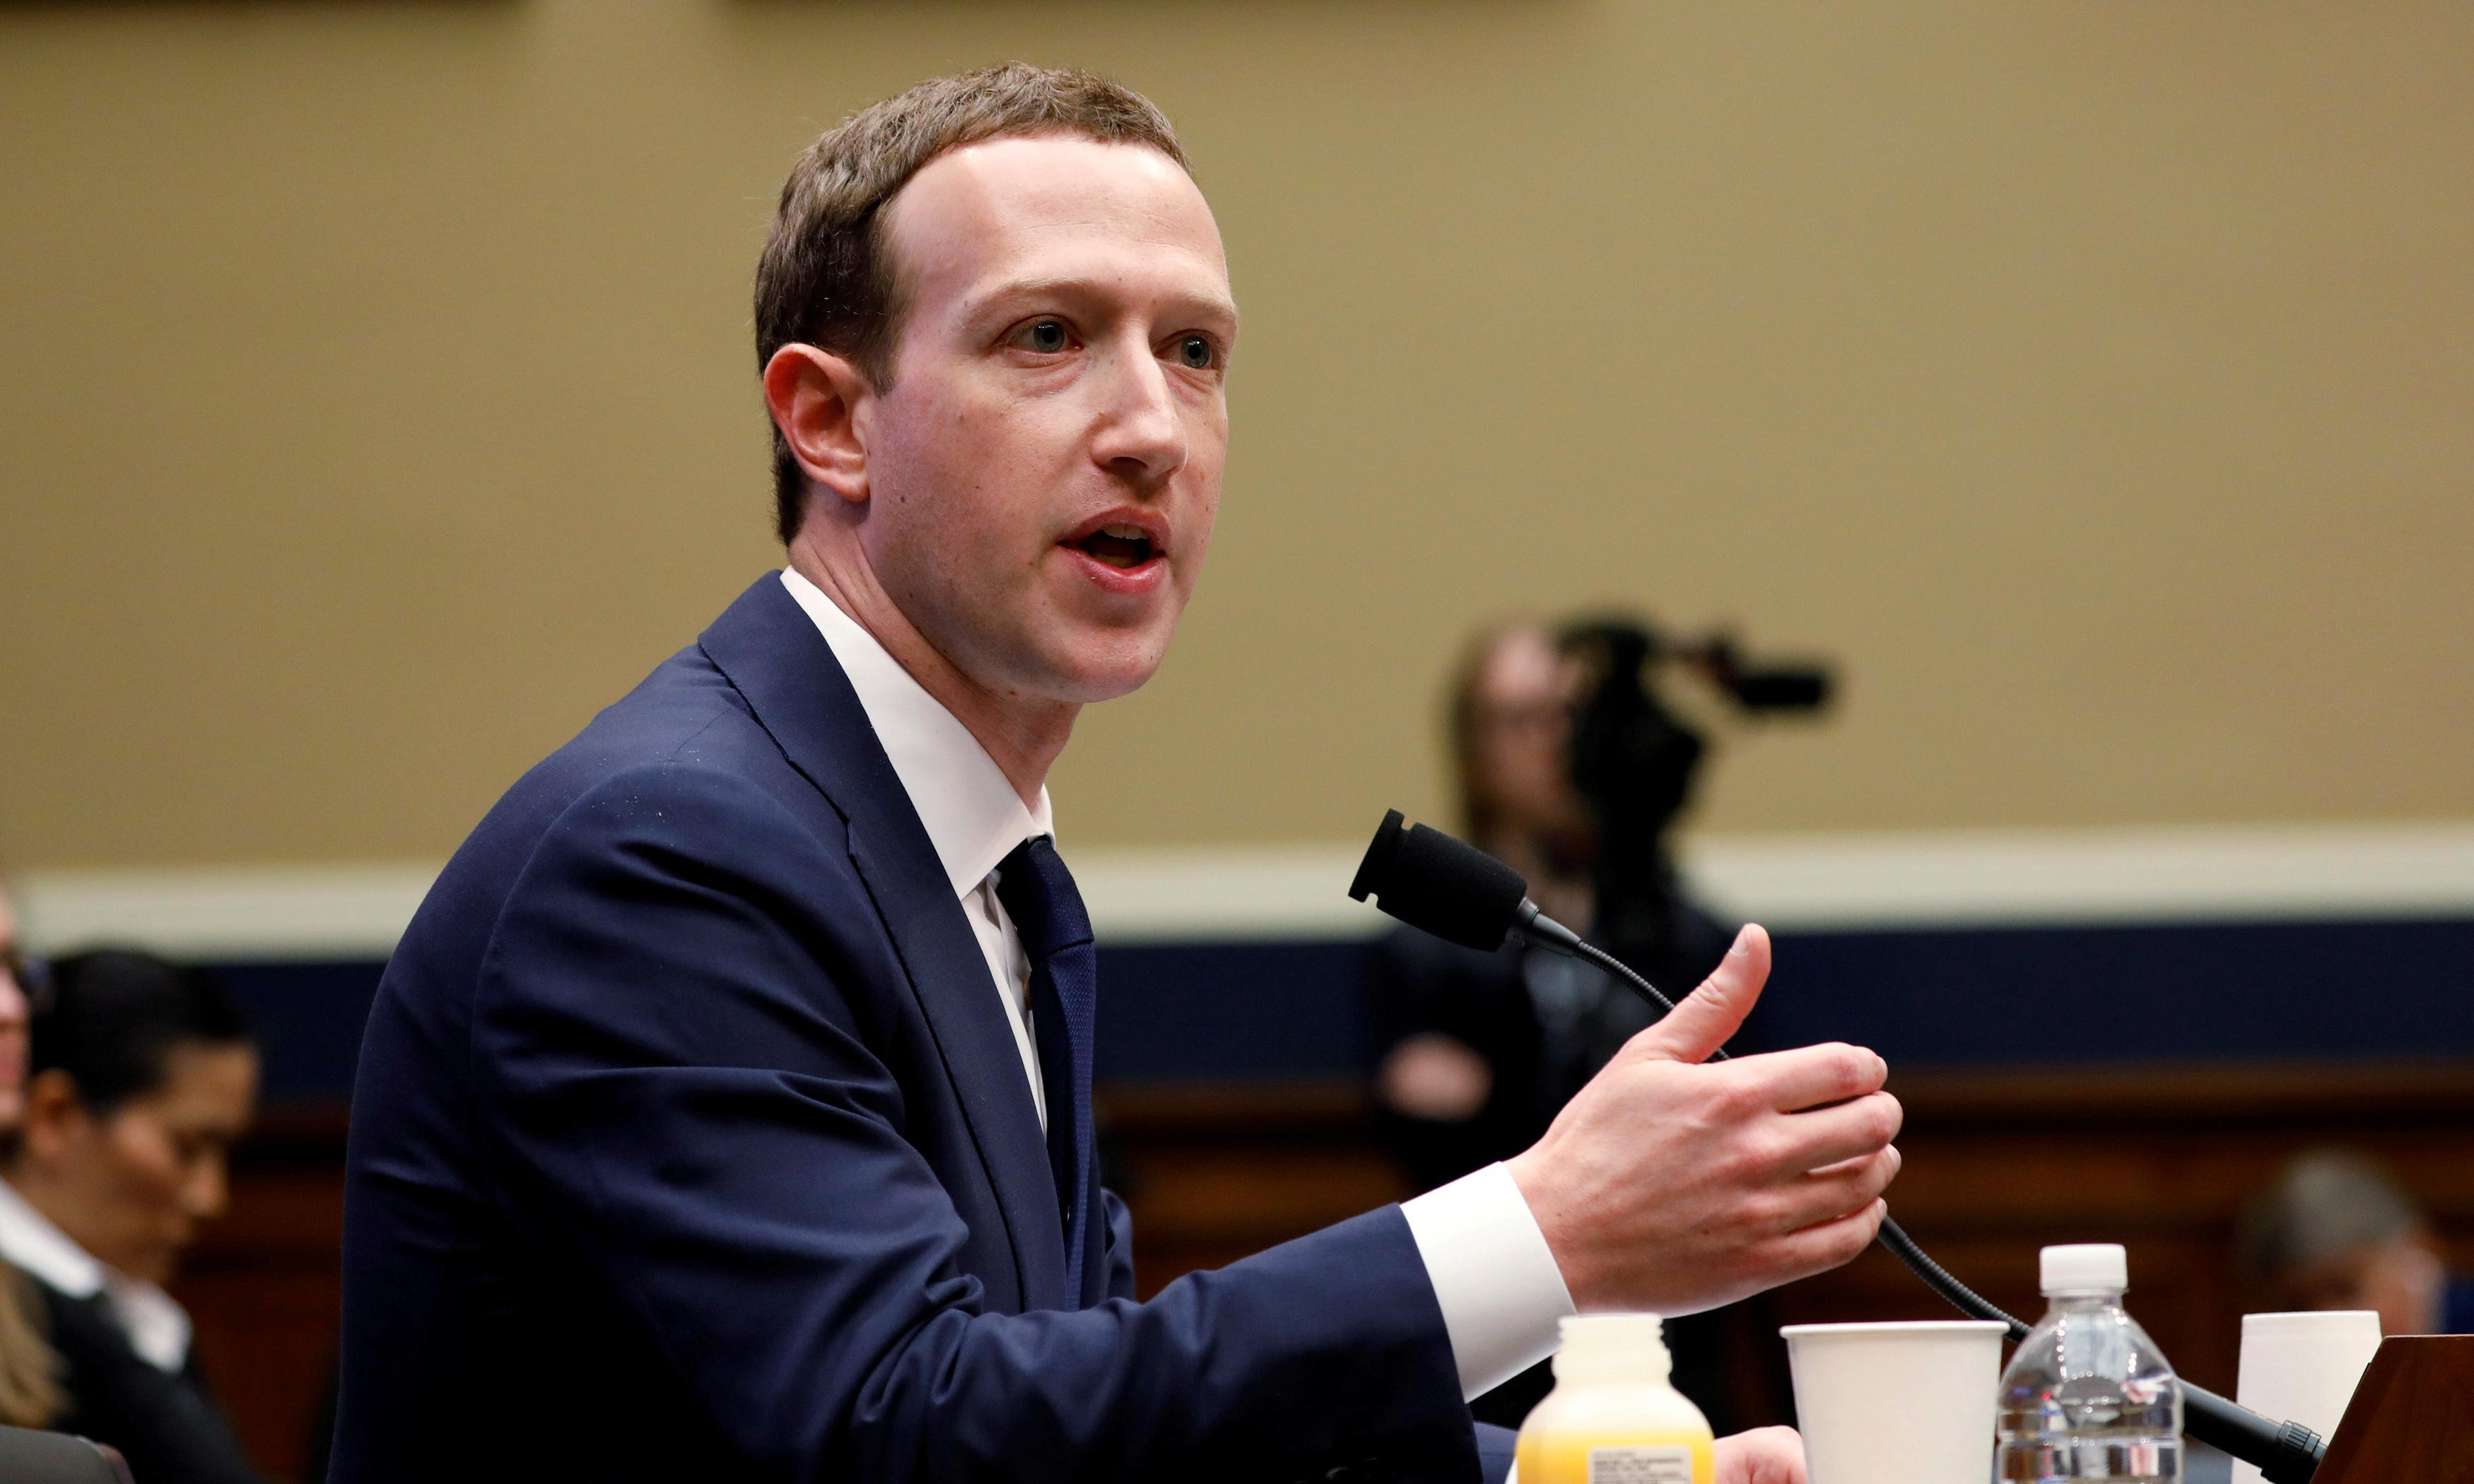 Facebook to be fined $5bn for Cambridge Analytica privacy violations – reports